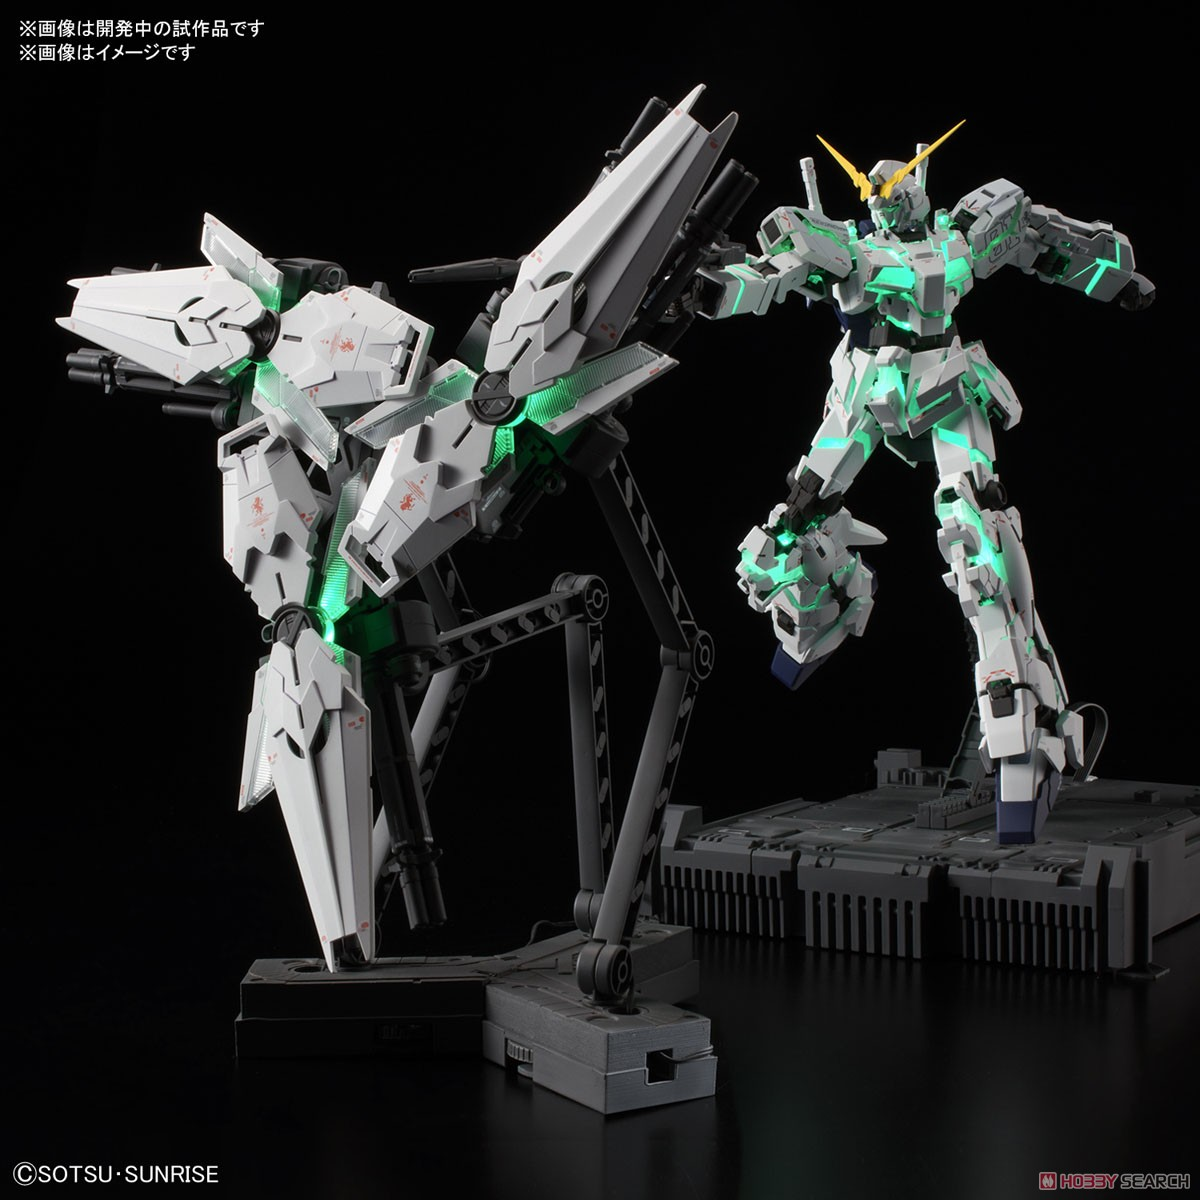 [PRE-ORDER] MGEX 1/100 Gundam Unicorn Ver Ka – ✨ ACCEPTS DEPOSIT ✨ now!!